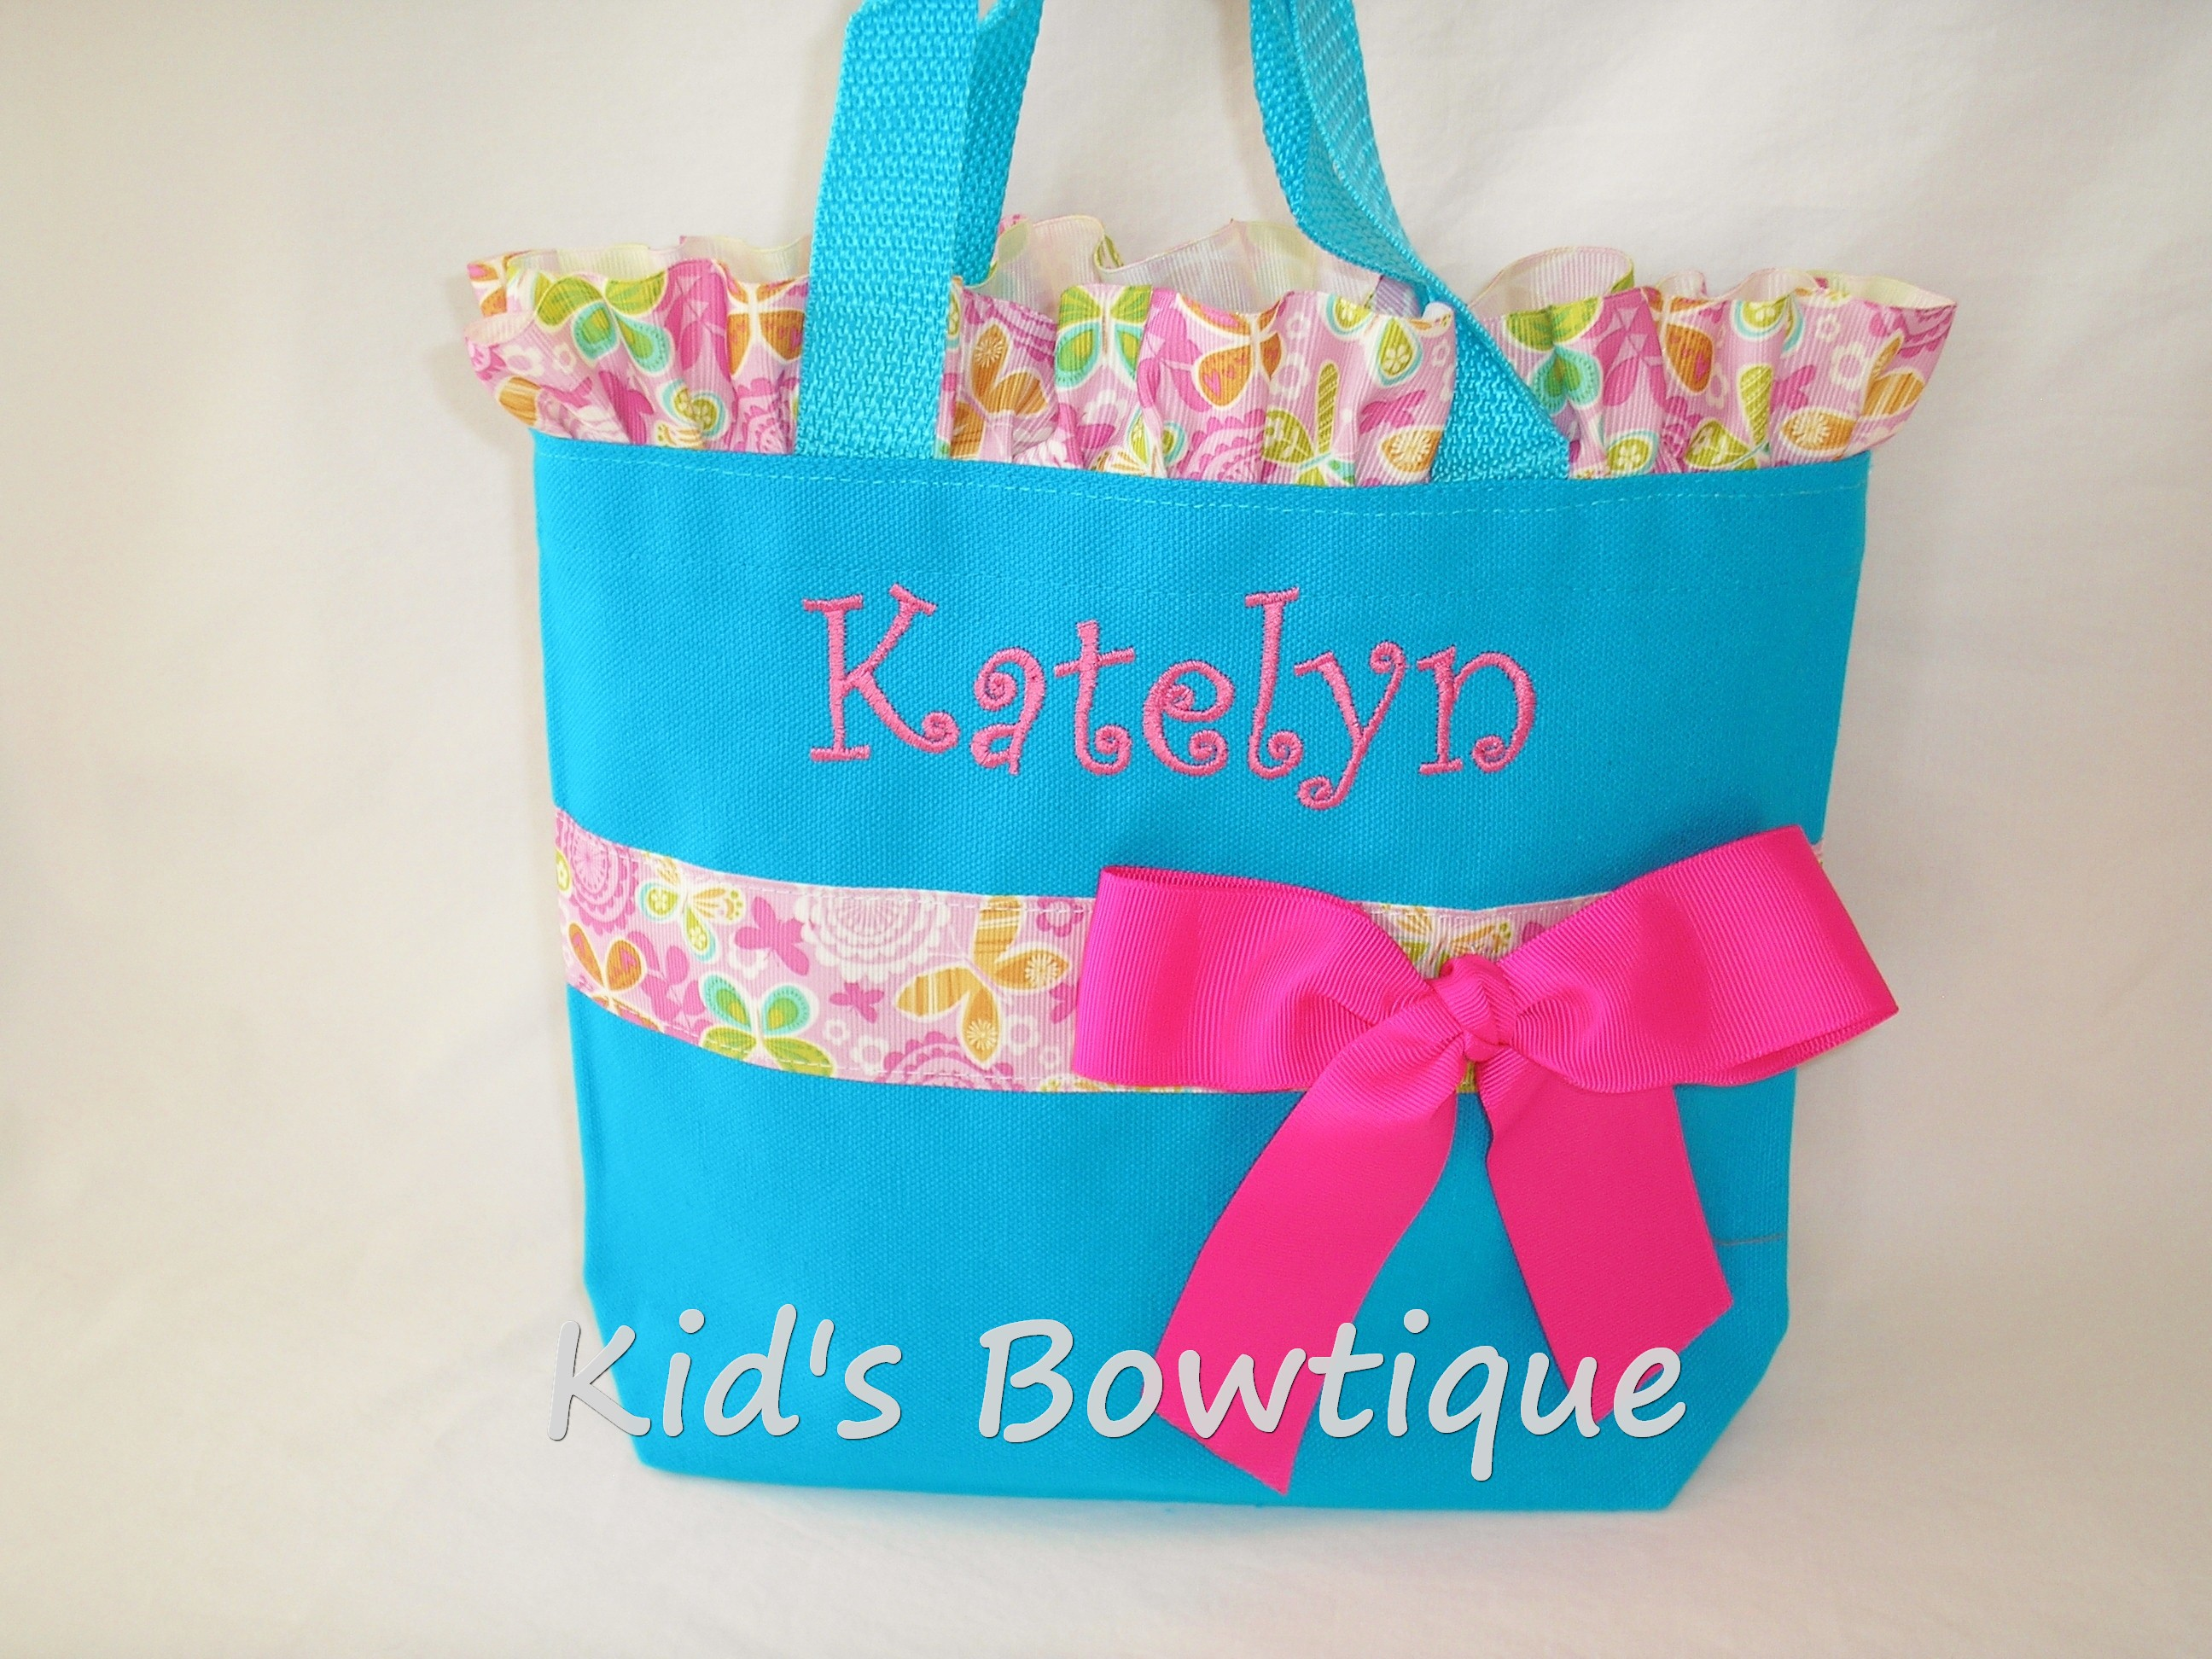 Ruffles and Bow Butterfly Ribbon Personalized Tote Bag